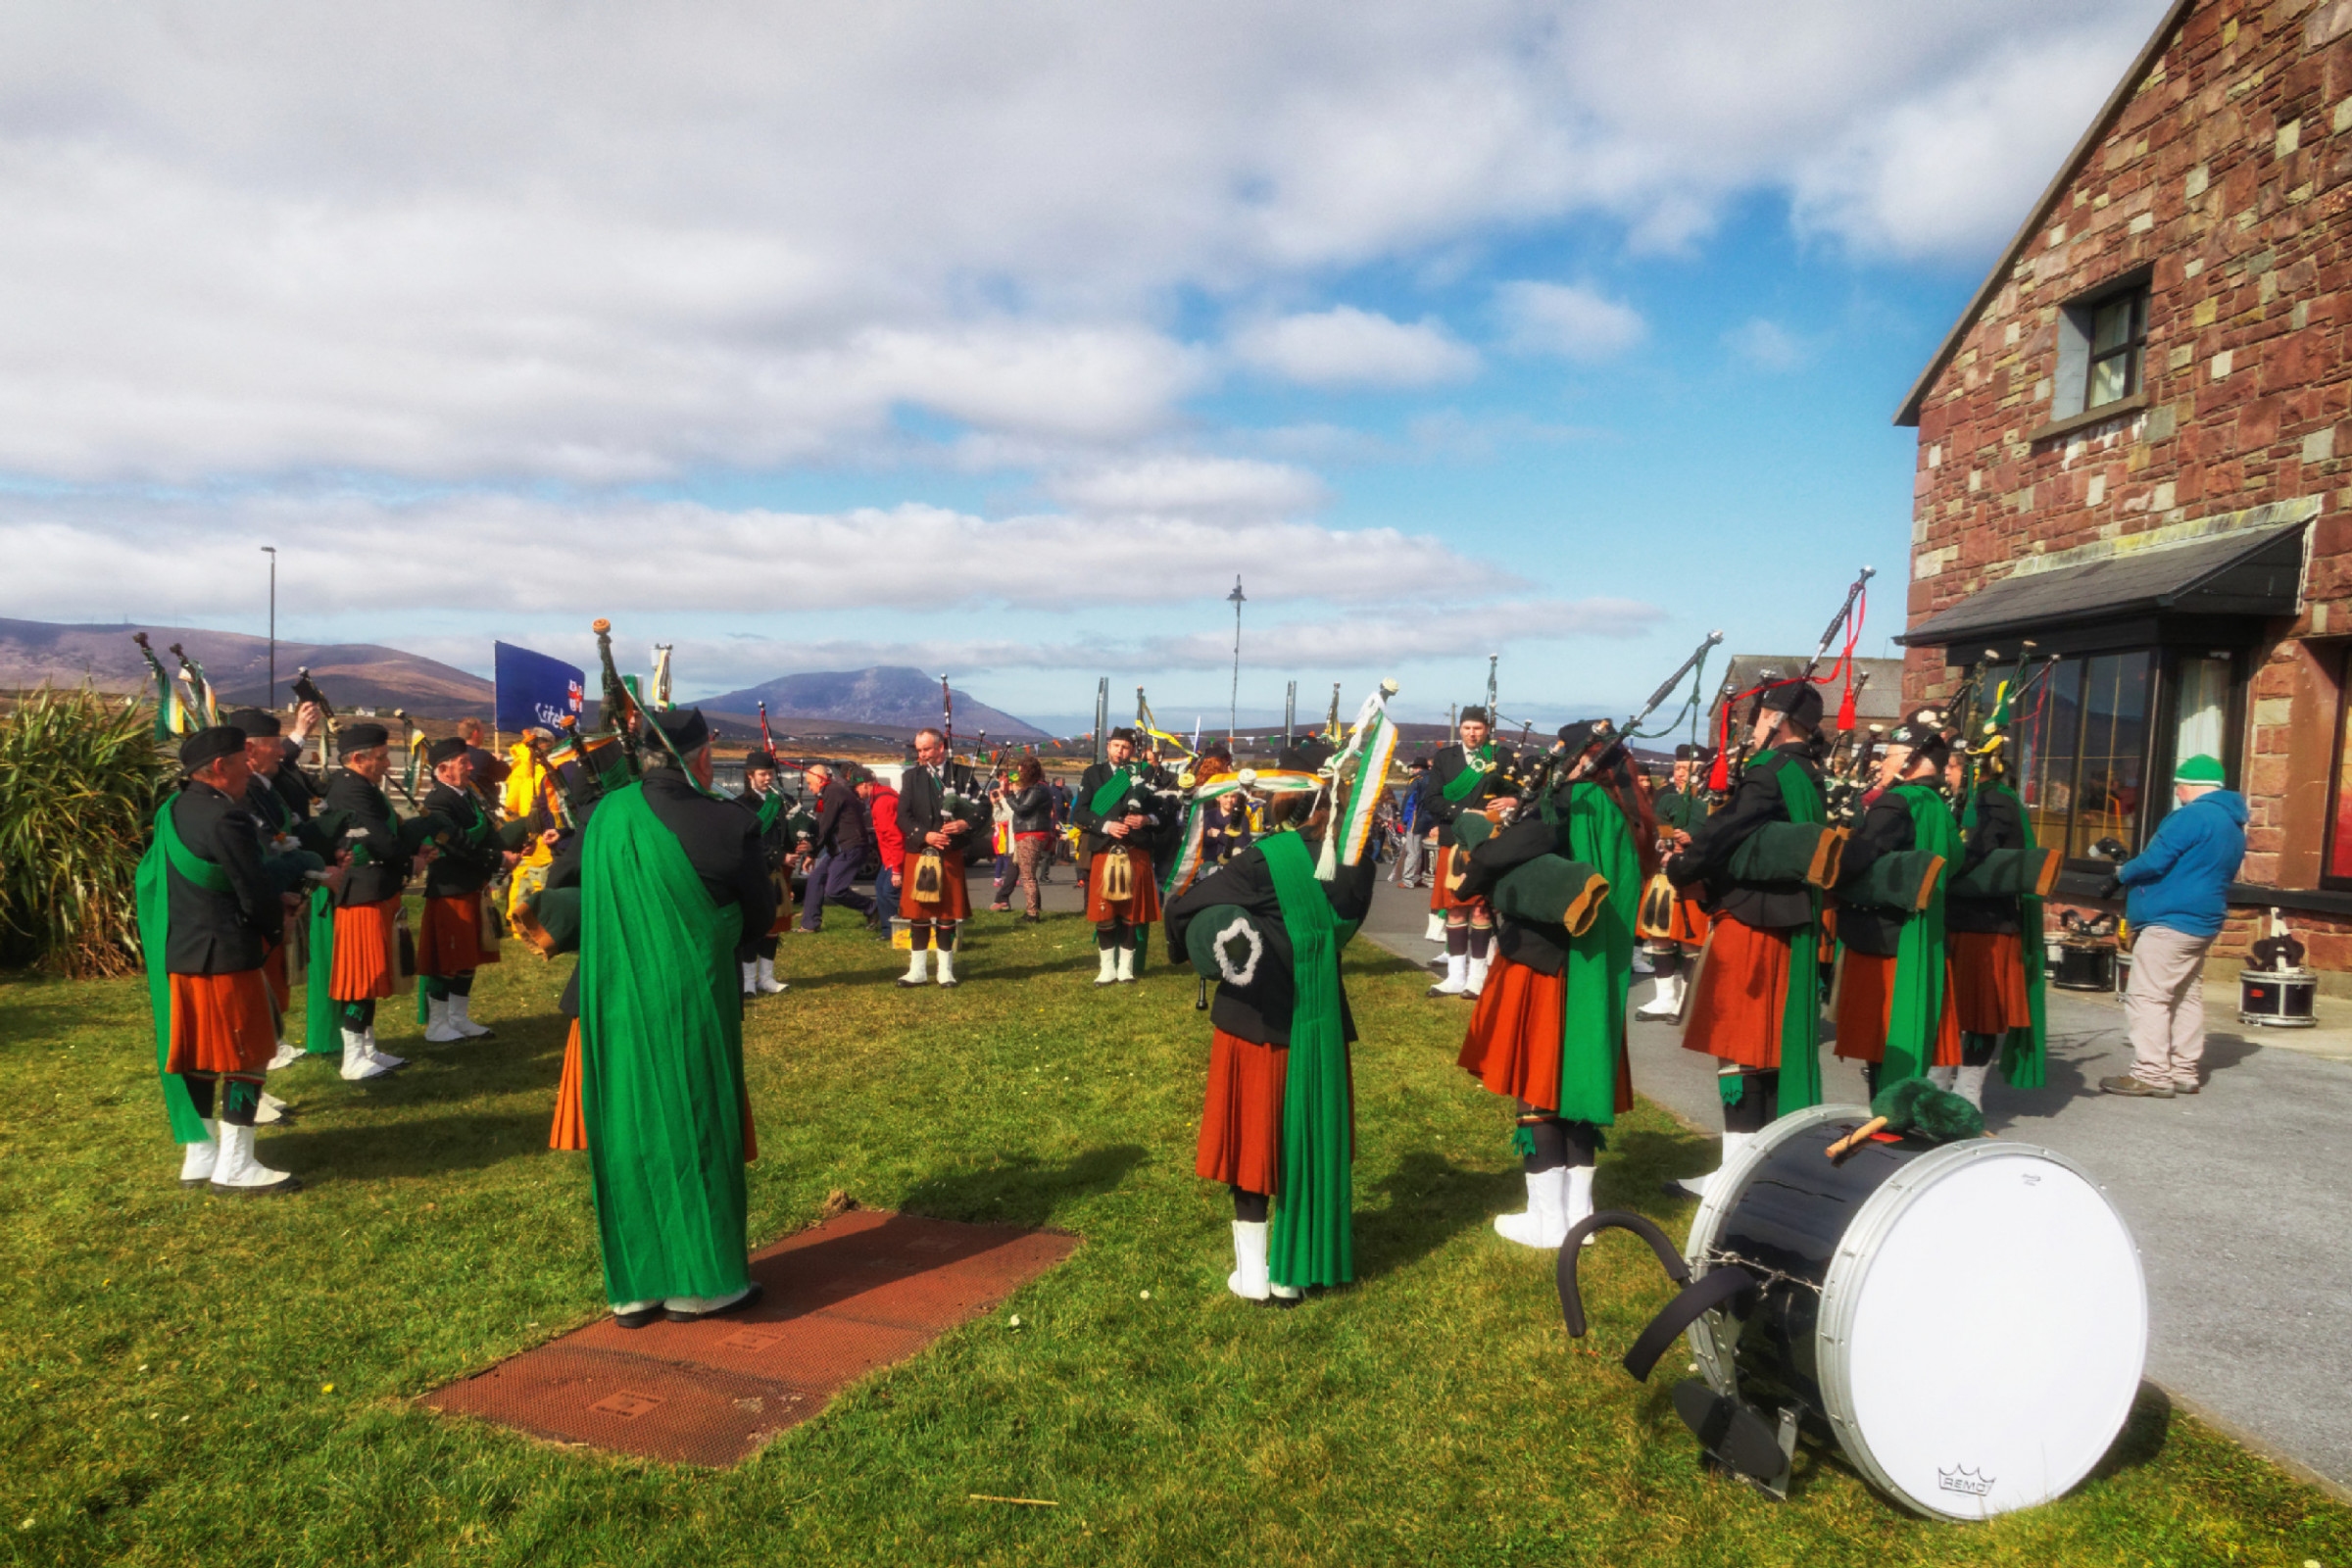 20160320124520-ie-achill-sound_parade-_DxO_13in_DxO96